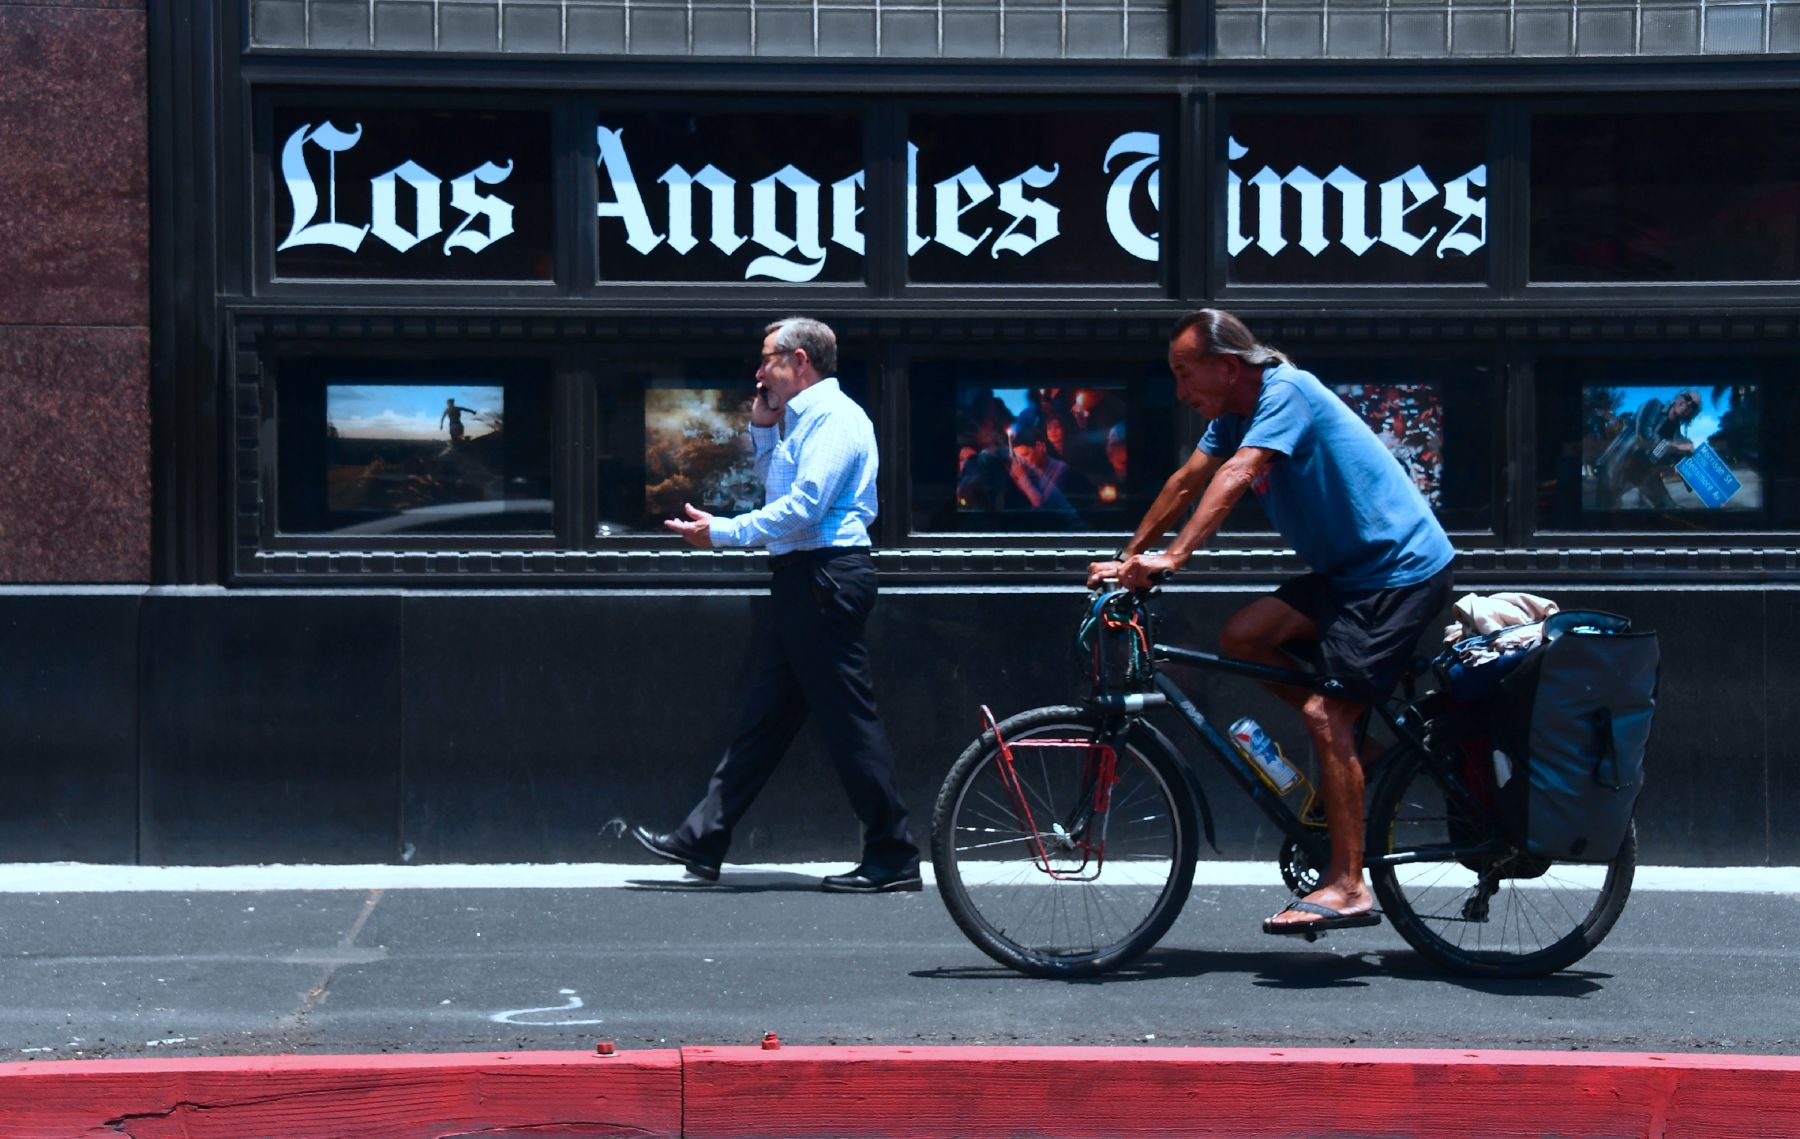 People make their way past the Los Angeles Times office building in downtown Los Angeles, California on July 16, 2018. (Photo by Frederic J. BROWN / AFP)